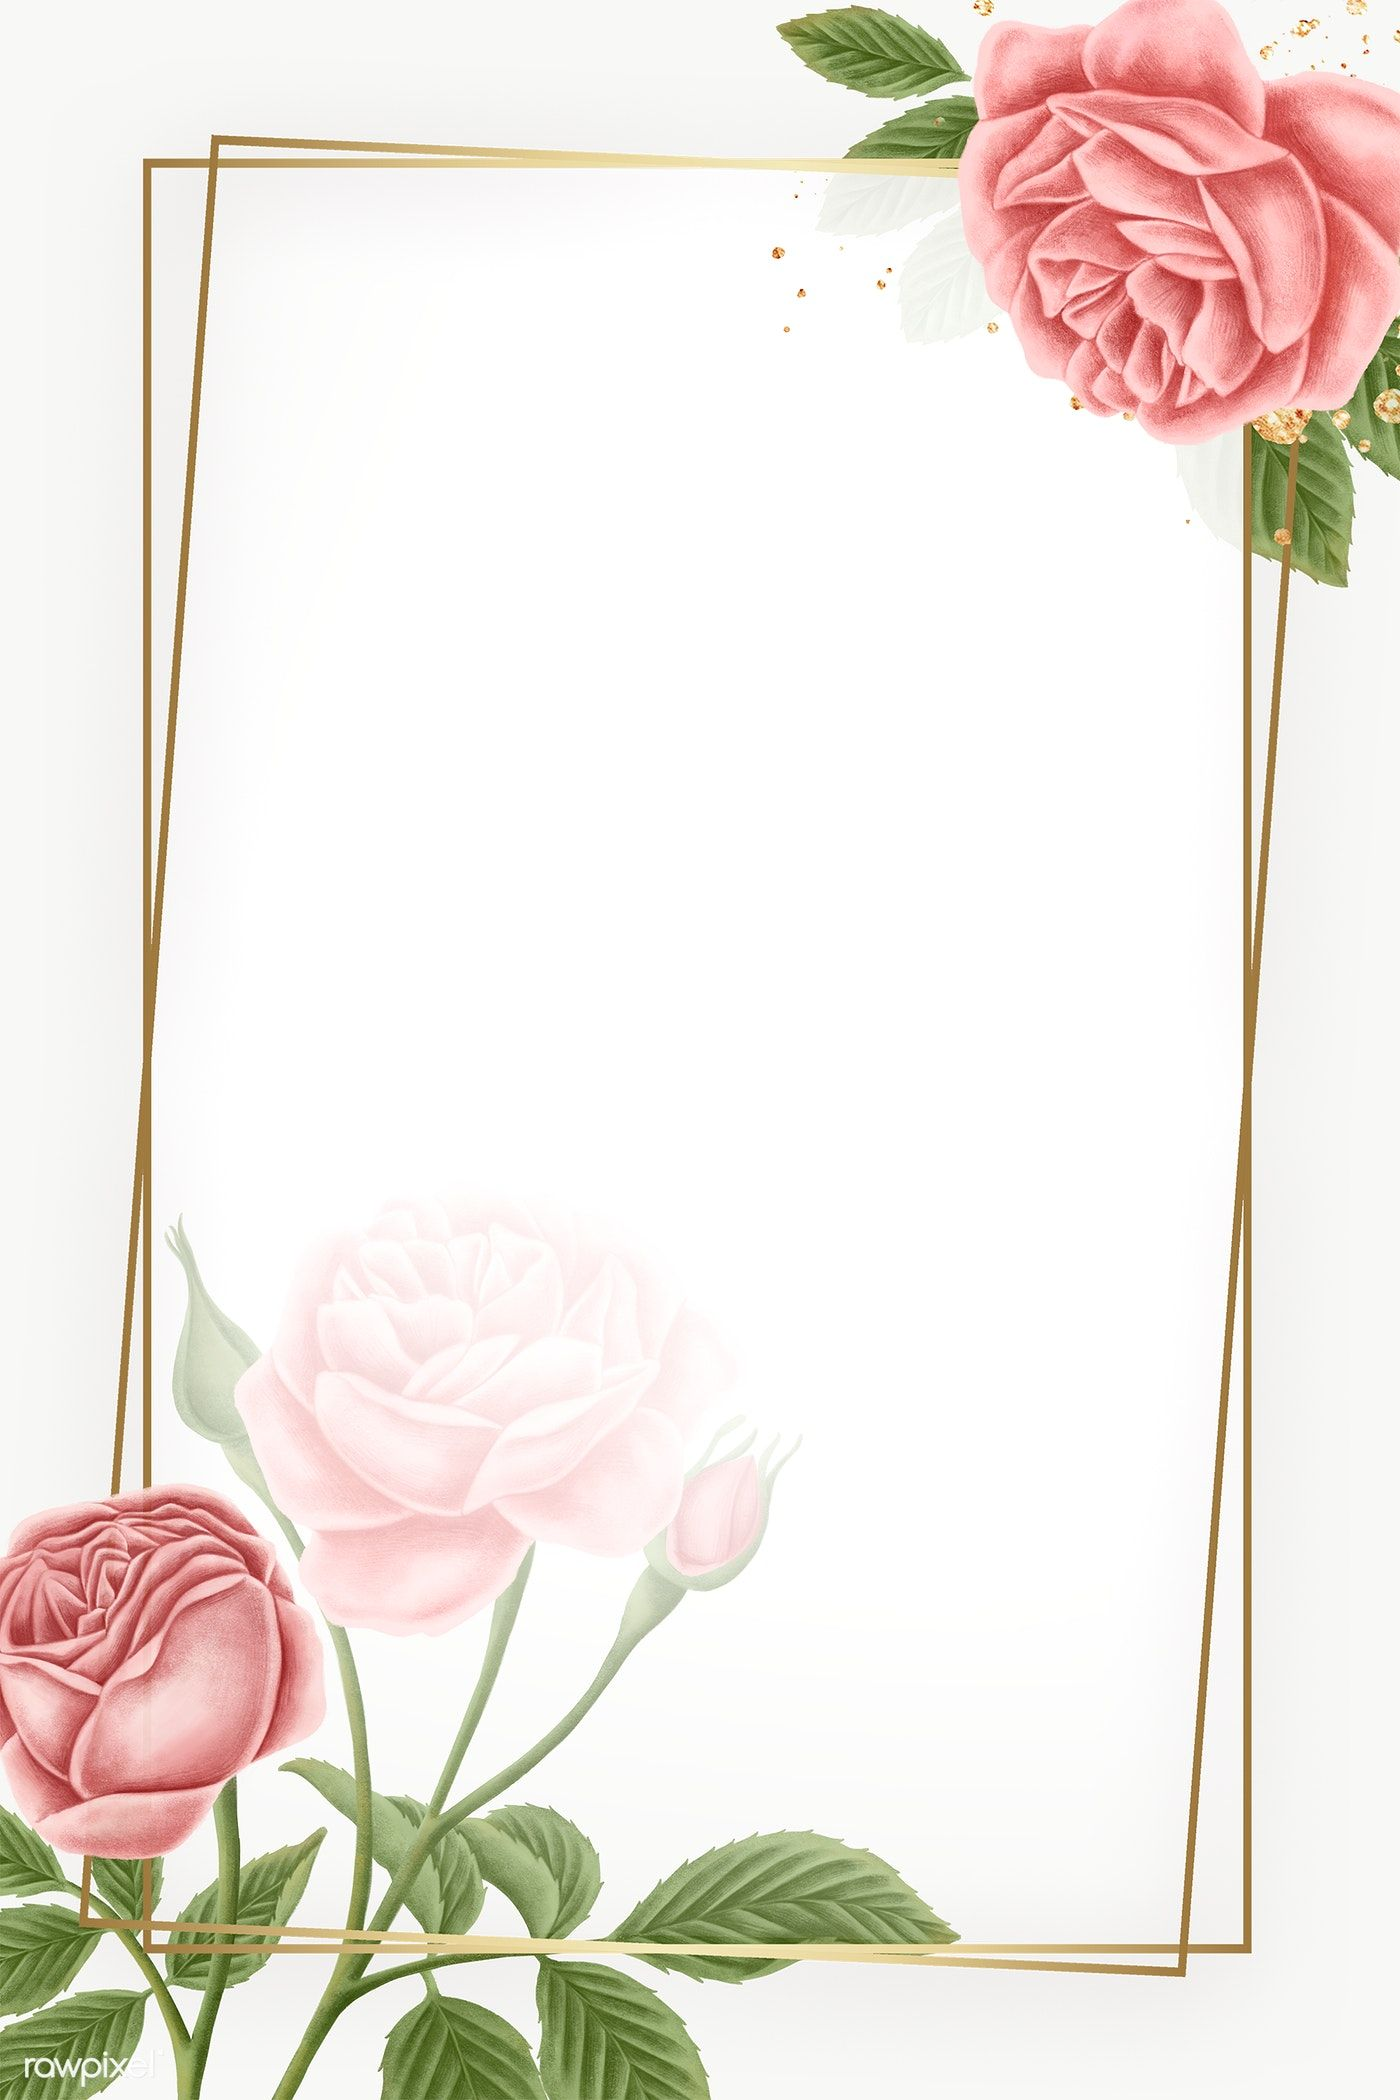 Download Premium Png Of Red Rose Frame Transparent Png 2221563 In 2020 Rose Frame Flower Frame Flower Phone Wallpaper